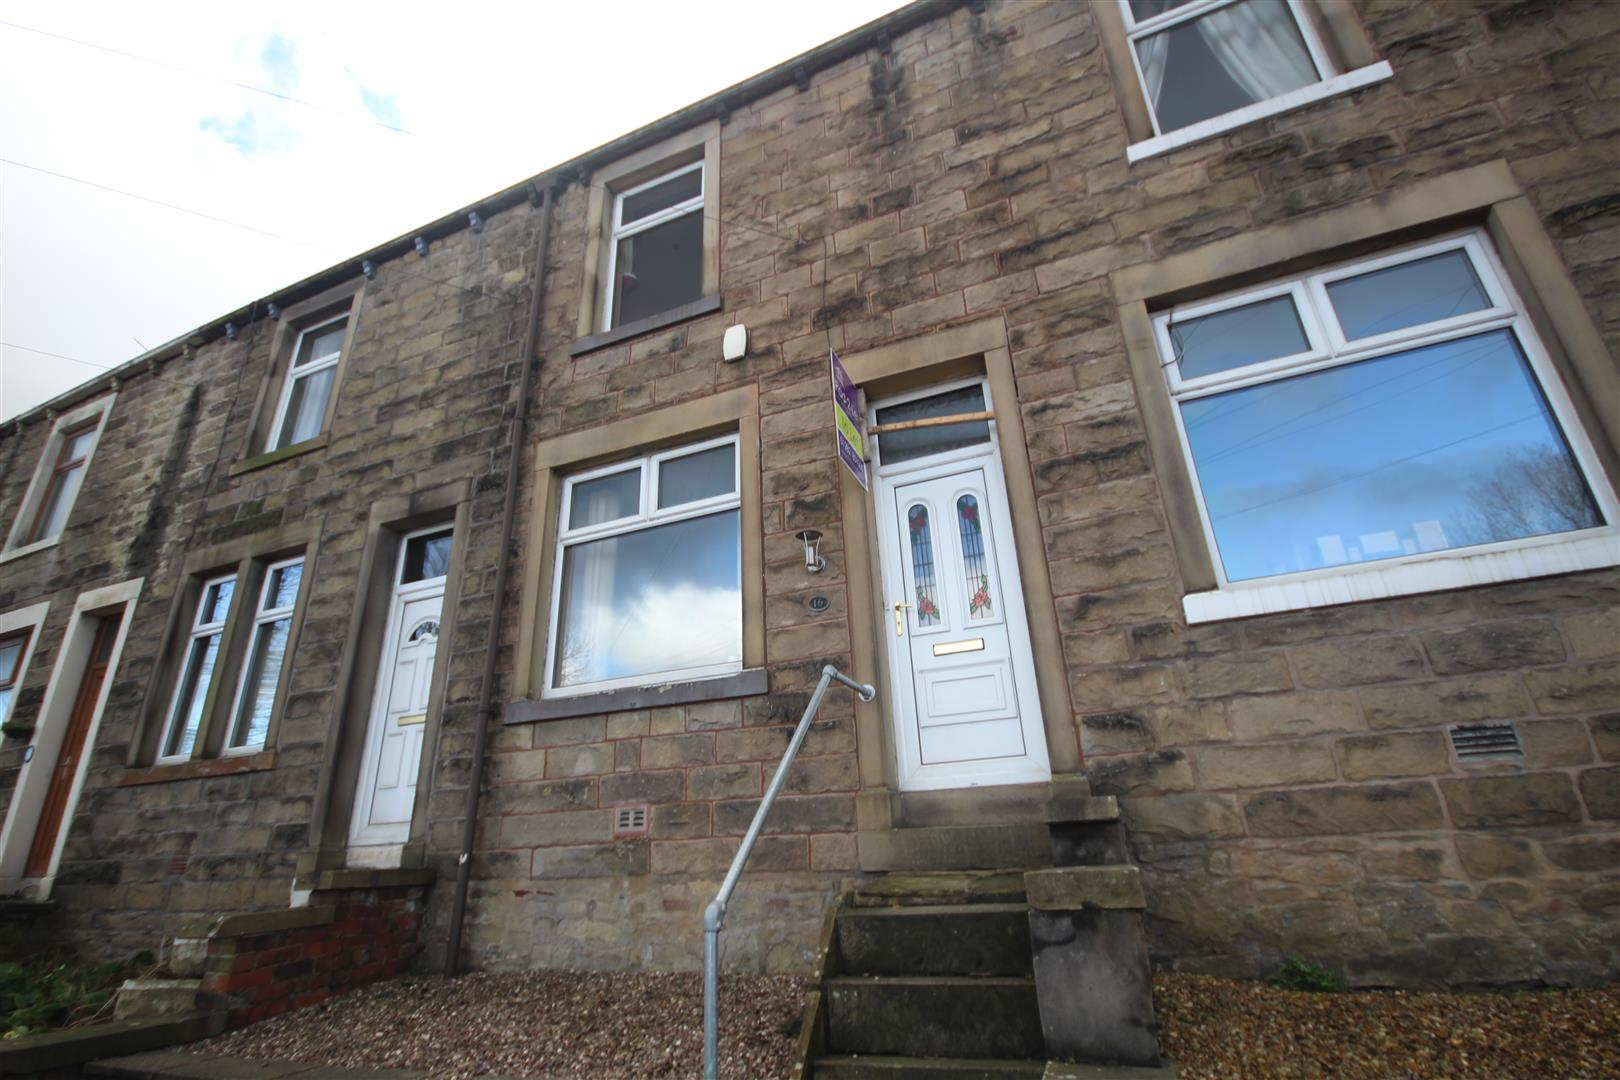 3 bedroom mid terrace house To Let in Barnoldswick - 2016-02-03 13.35.27.jpg